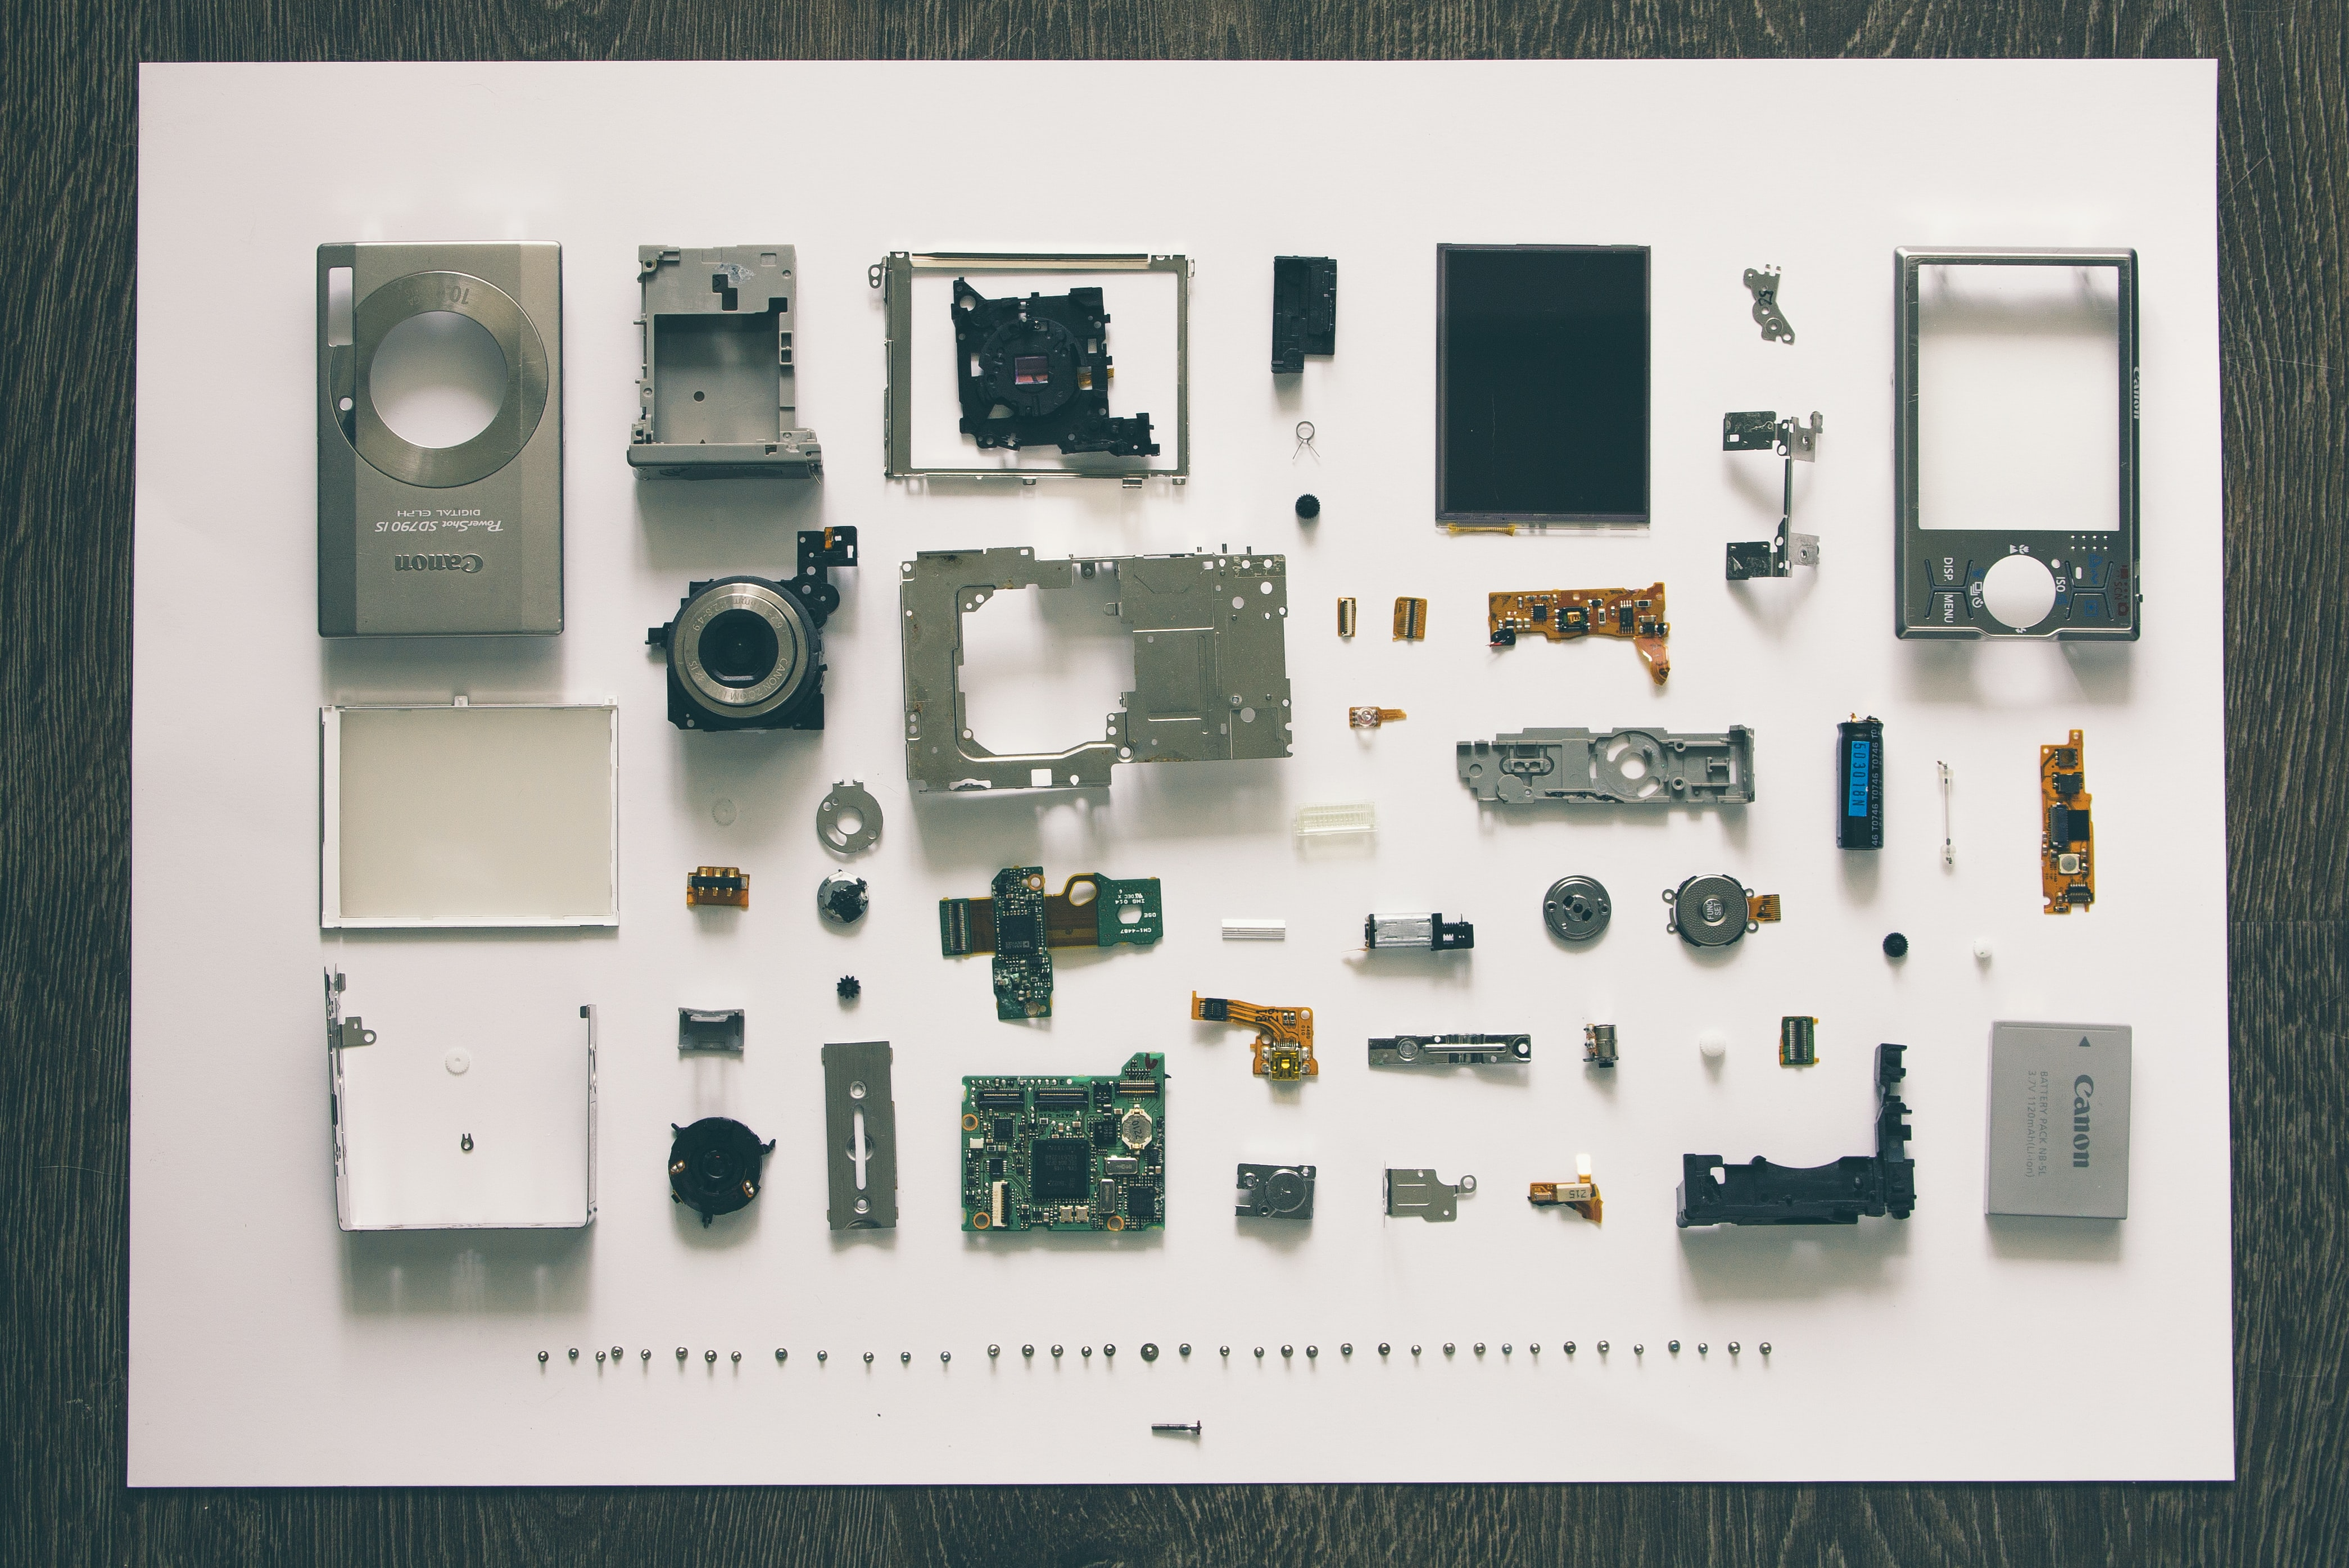 Parts of canon camera components disassembled or waiting to be arranged in good shape.